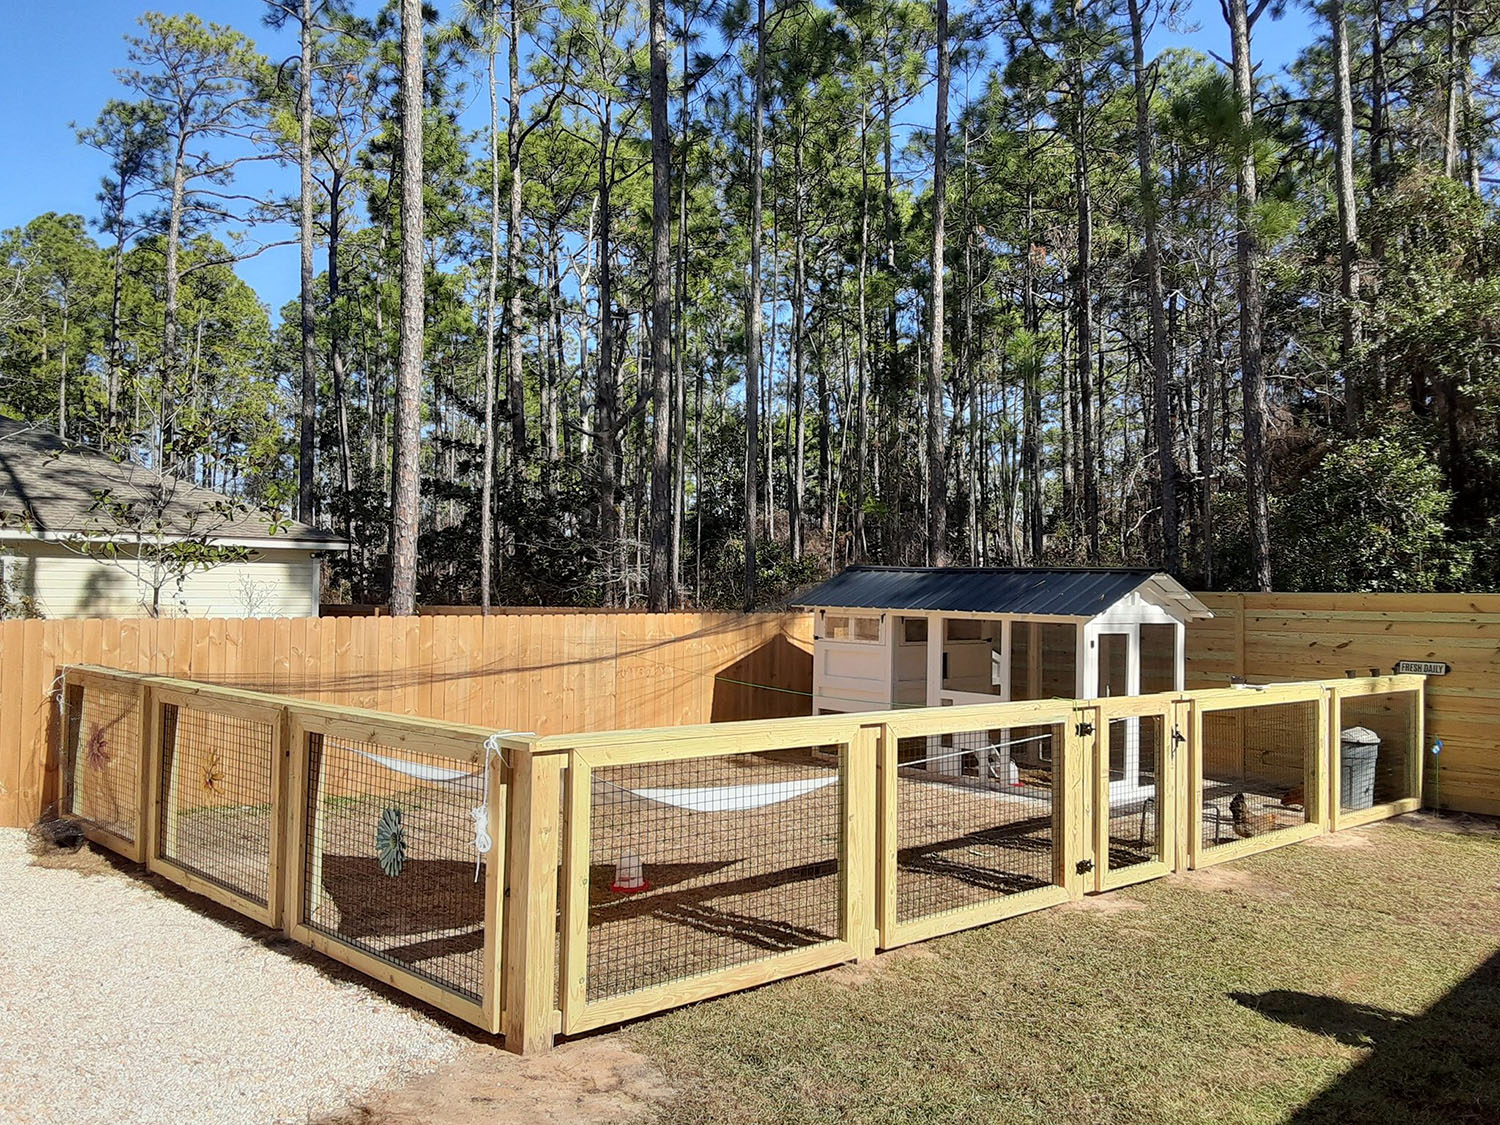 6×12 American Coop in Florida with fencing around